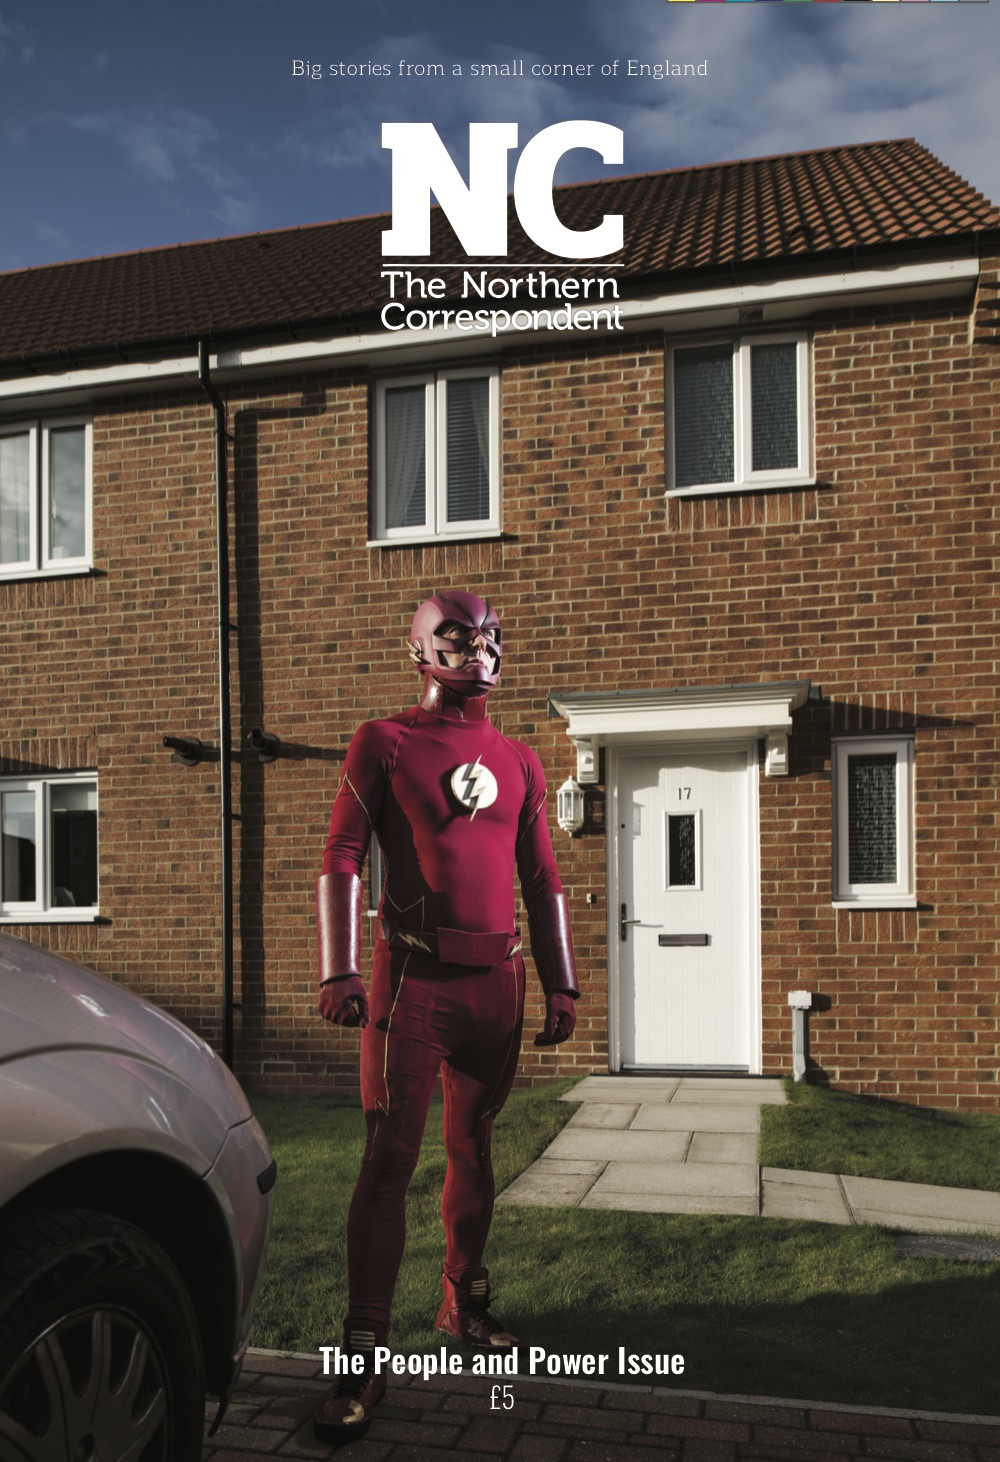 The Northern Correspondent  I launched this quarterly magazine for the north east with a team of like-minded local journalists, editing and publishing nine themed issues.